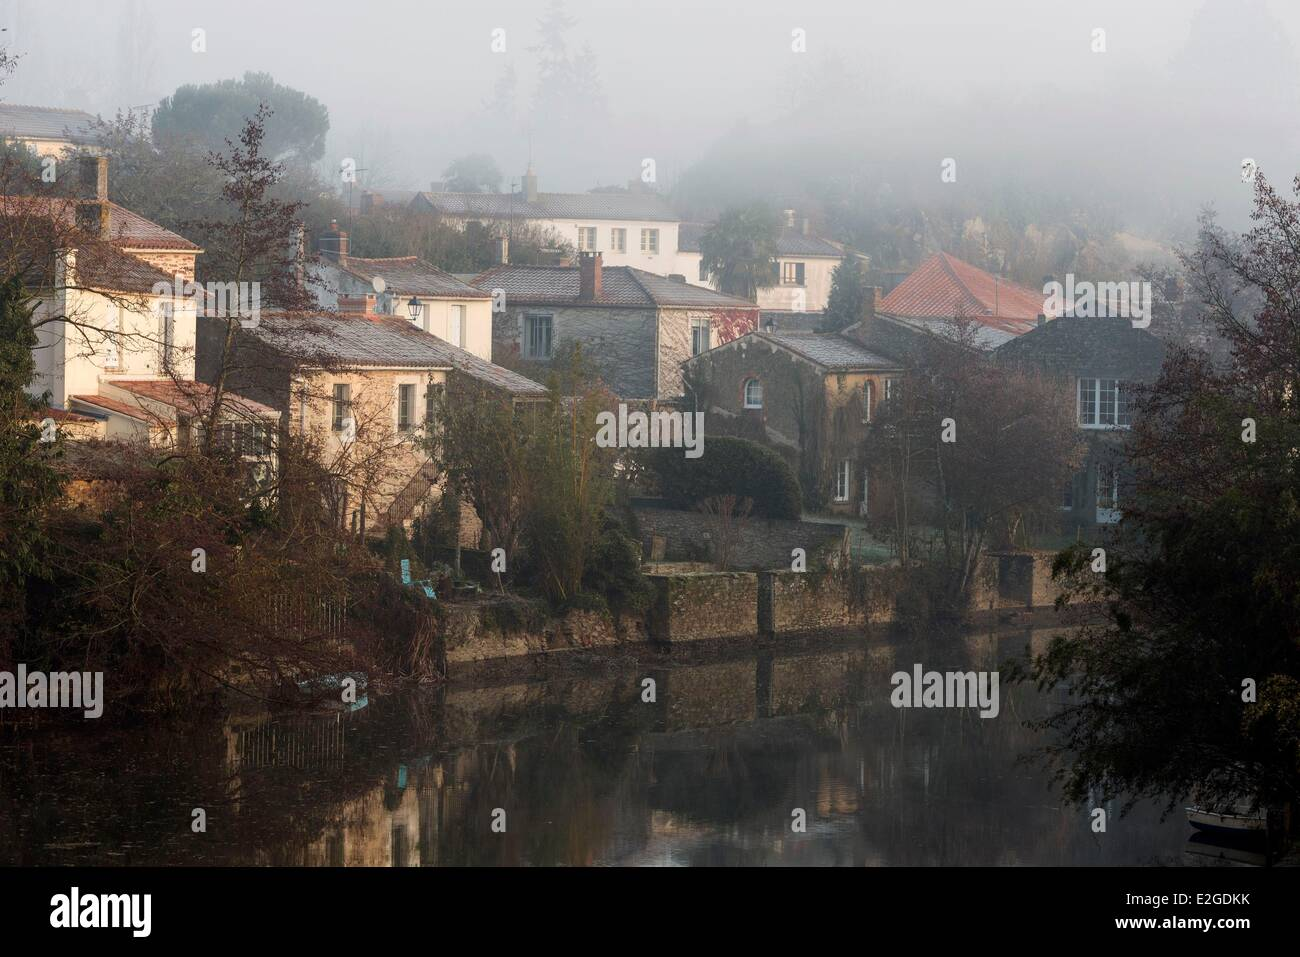 France Vendee Mareuil sur Lay Dissais Lay river - Stock Image